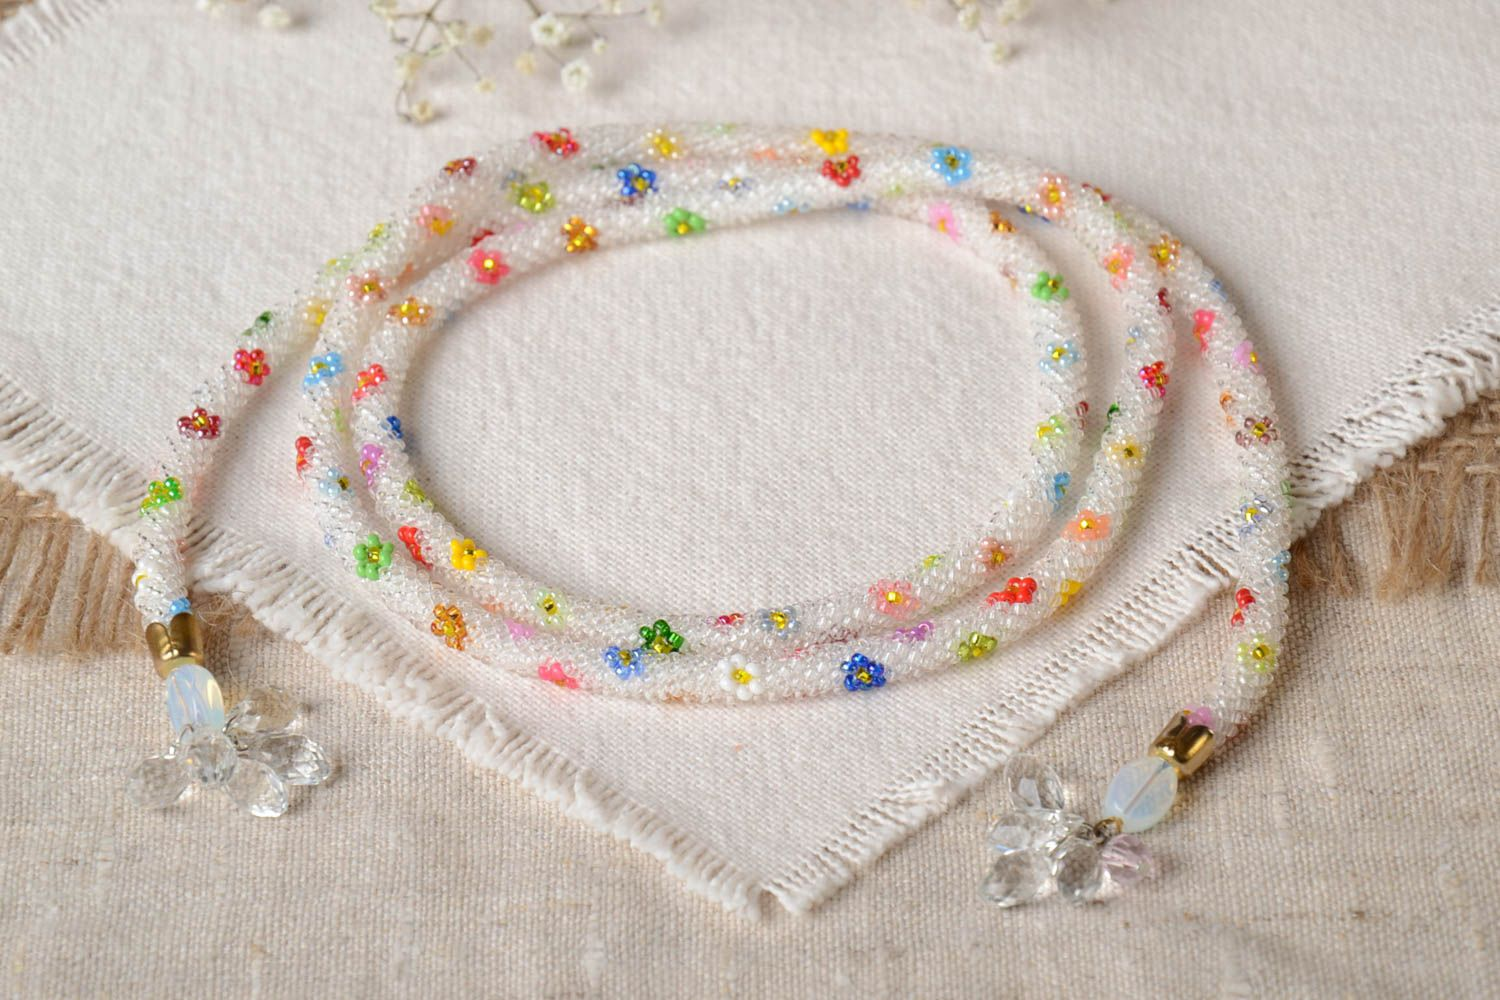 Colorful handmade beaded cord necklace long necklace for women gifts for her photo 1